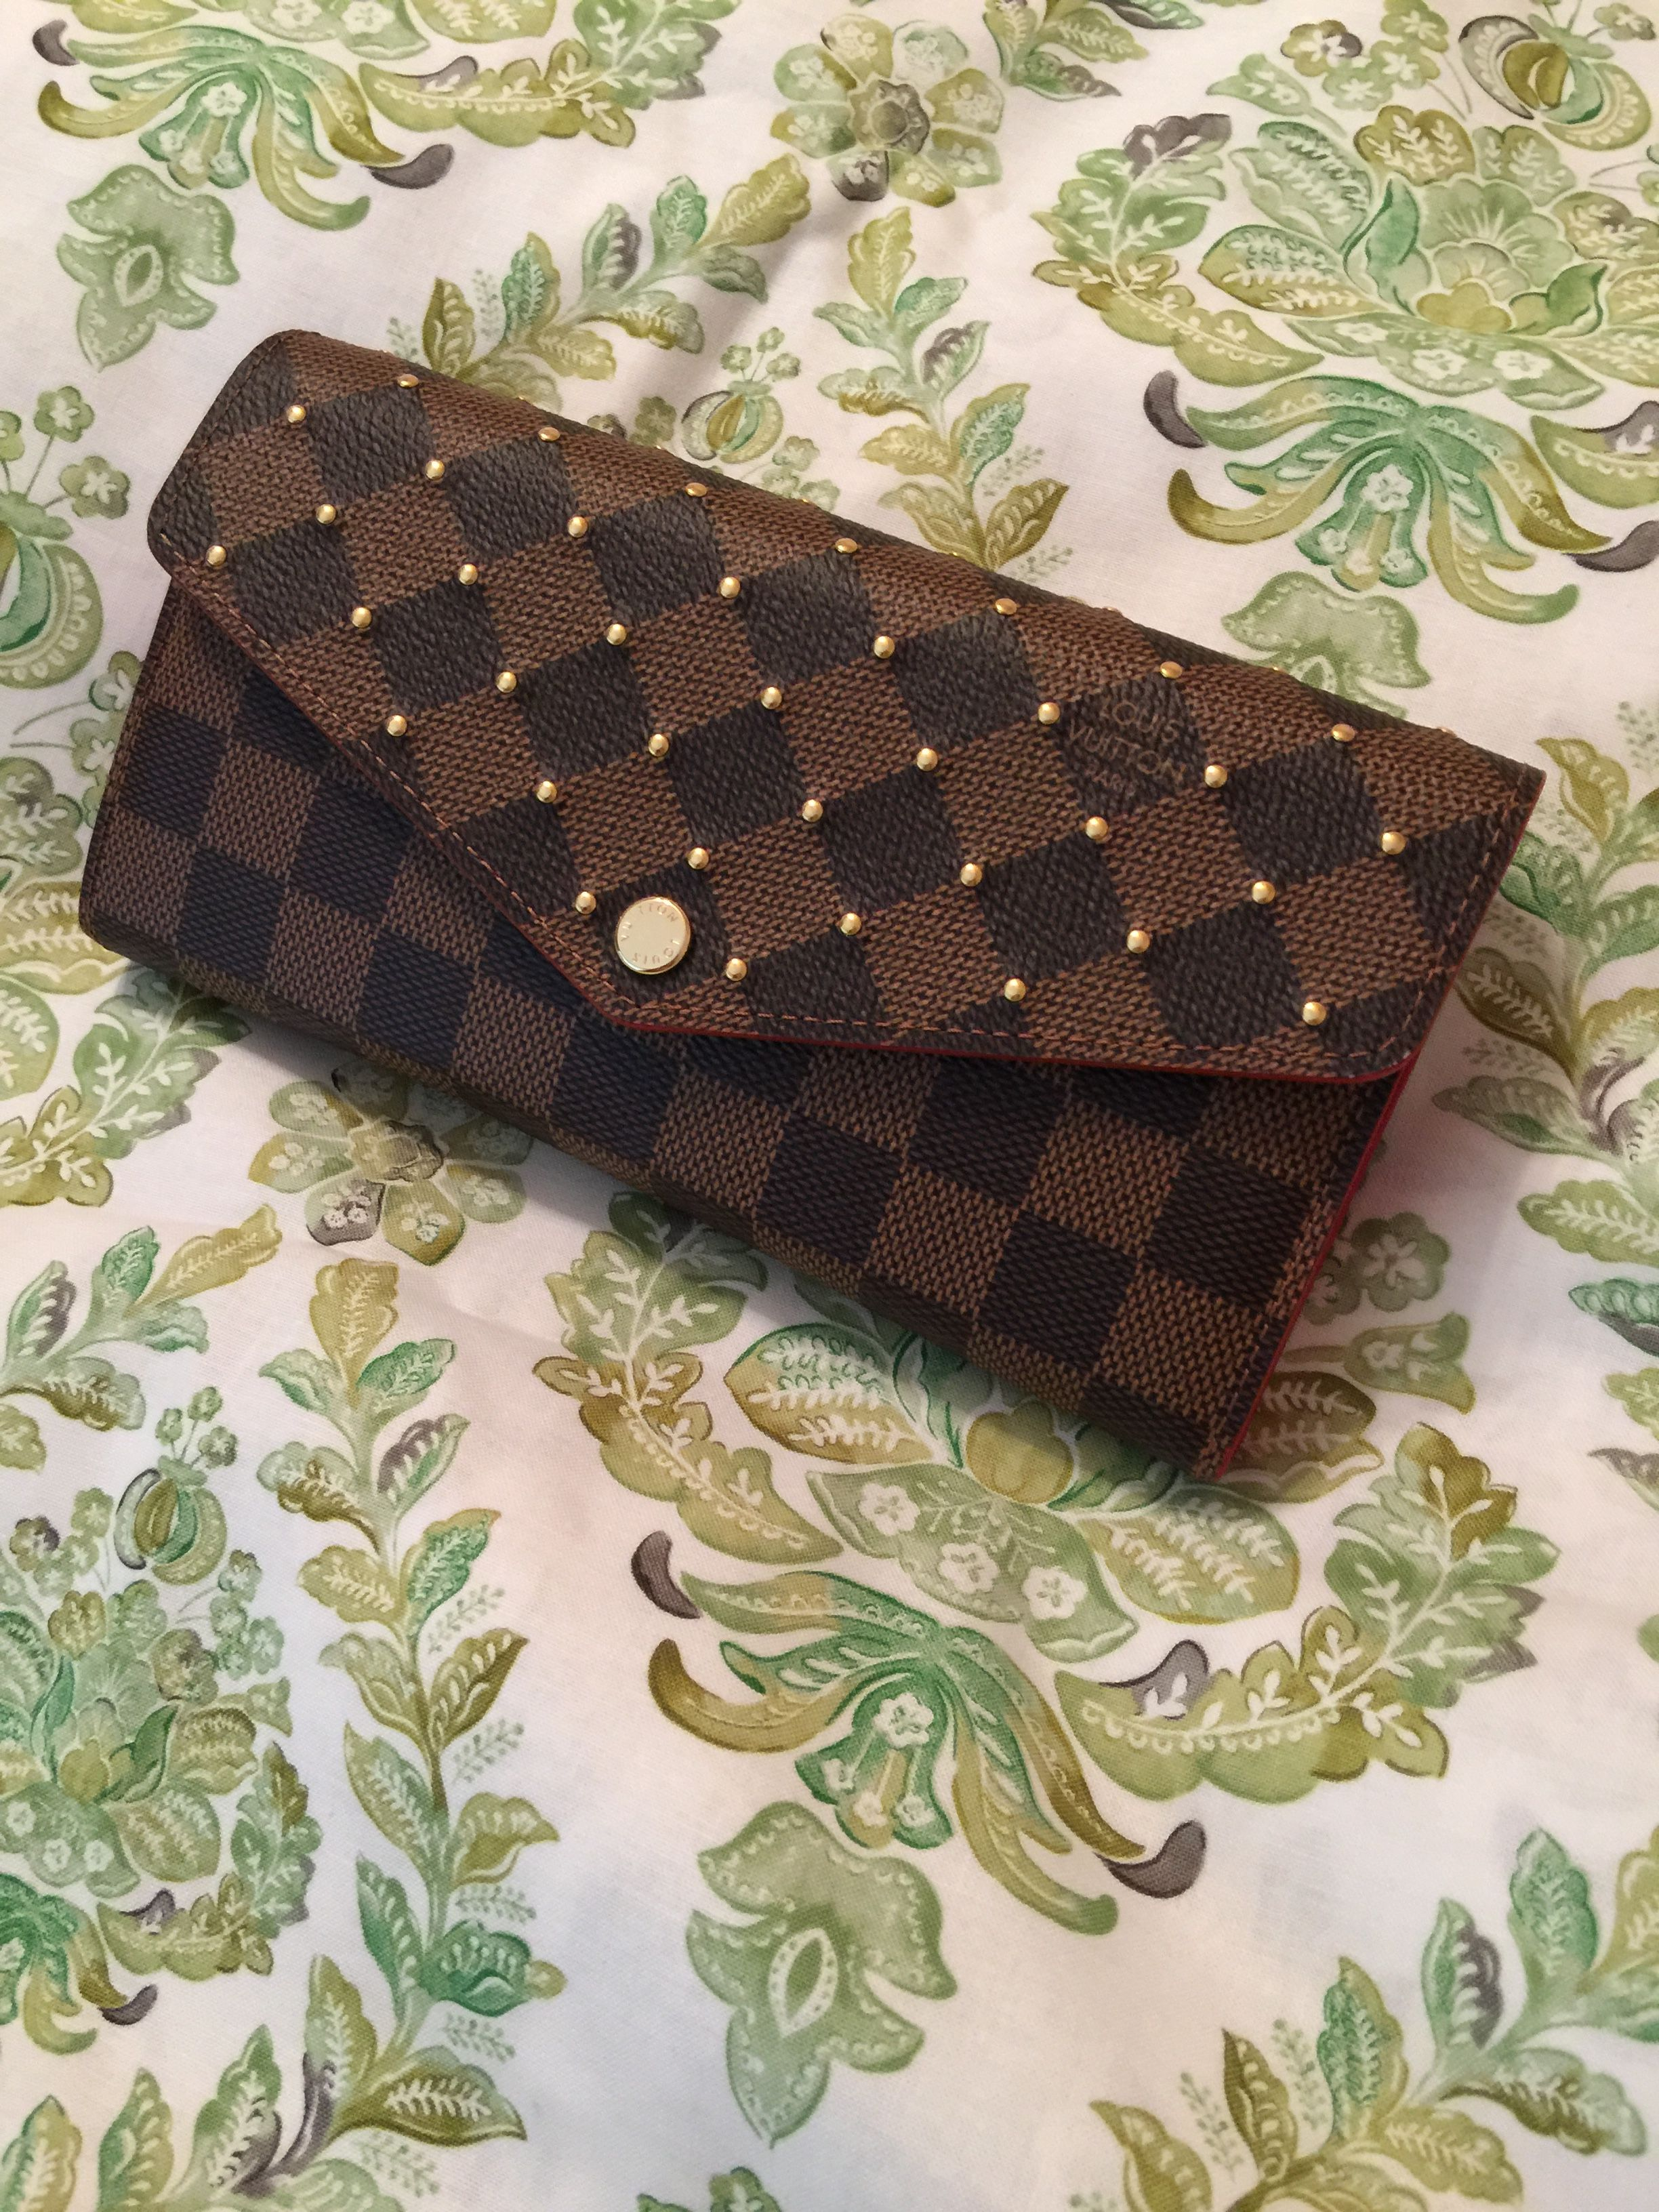 f9c428cd1bc97 Louis Vuitton 2018 Sarah wallet in Damier Ebene with gold colored pin dot  studs